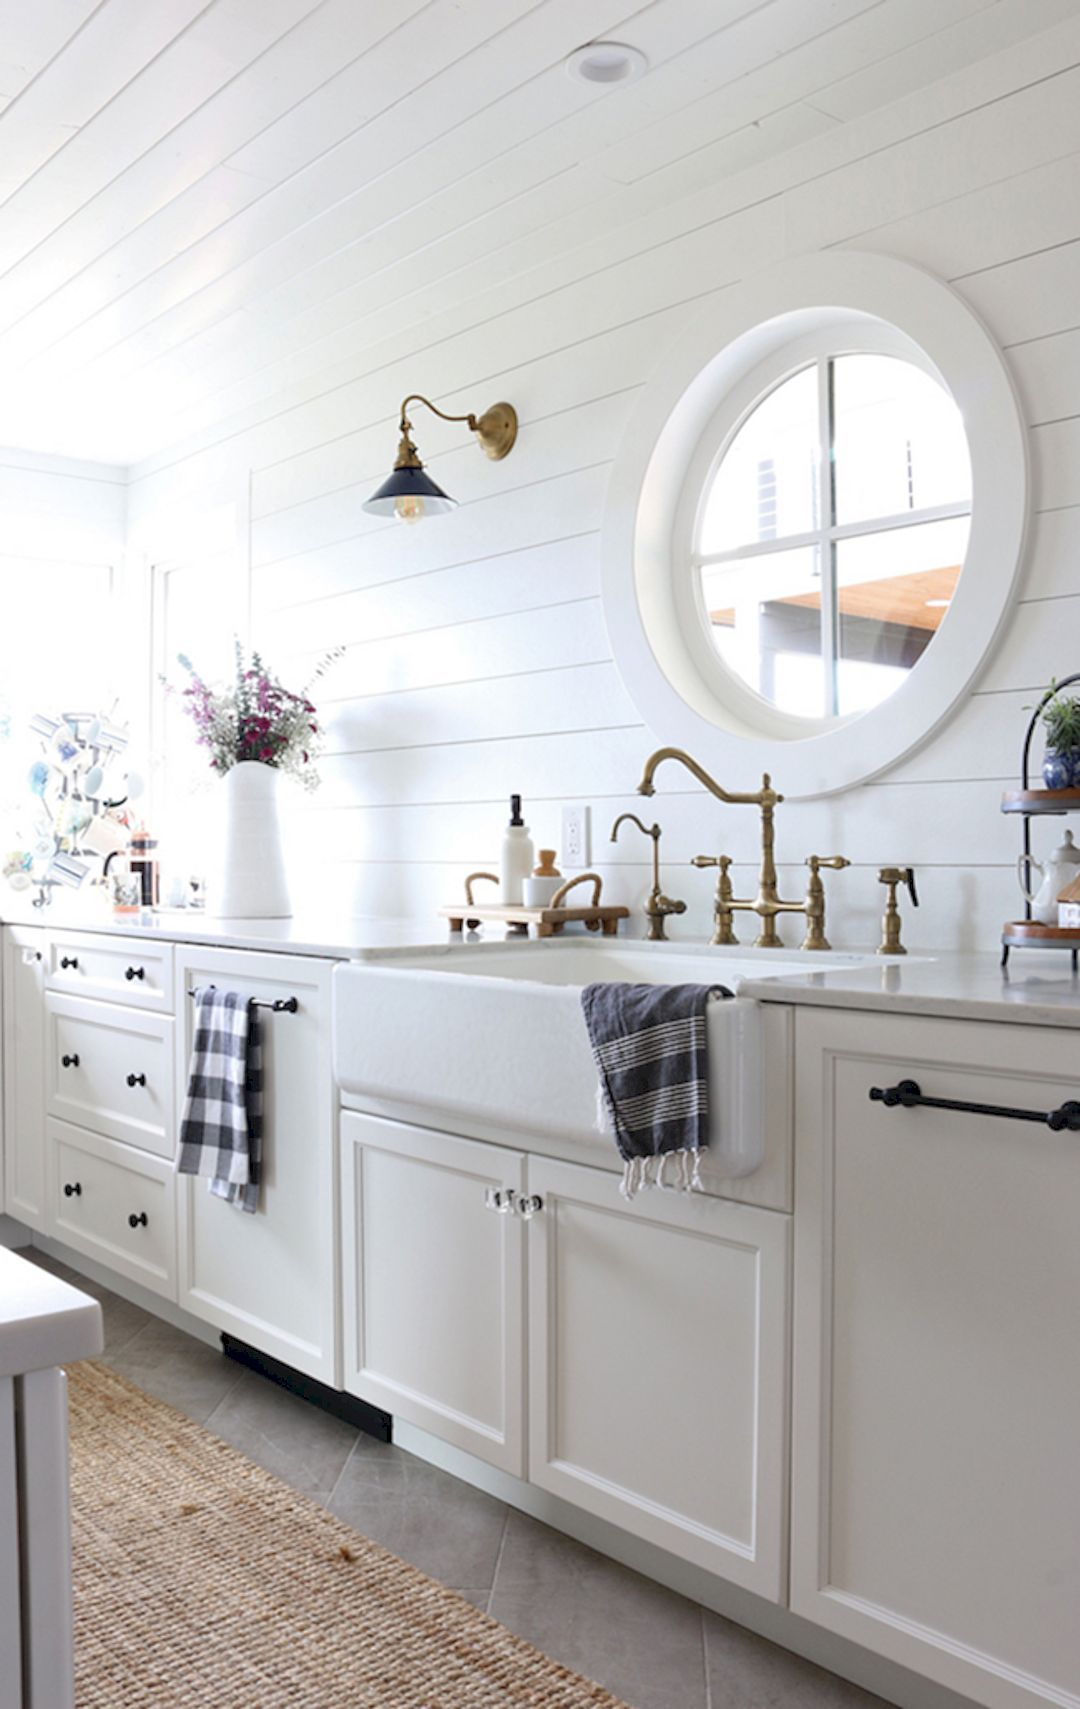 34 Beautiful Modern Farmhouse Kitchen Sink Designs | Furniture ... on country kitchen renovation, farmhouse home, modern kitchen renovation, rustic kitchen renovation, farmhouse attic renovation, victorian kitchen renovation, tudor kitchen renovation, american foursquare kitchen renovation, farmhouse renovation ideas, ranch kitchen renovation, bungalow kitchen renovation, farmhouse basement renovation, caboose renovation, victorian farmhouse renovation, old farmhouse renovation, single wide kitchen renovation, vintage kitchen renovation, farmhouse renovation before and after, farmhouse house renovation, country farmhouse renovation,